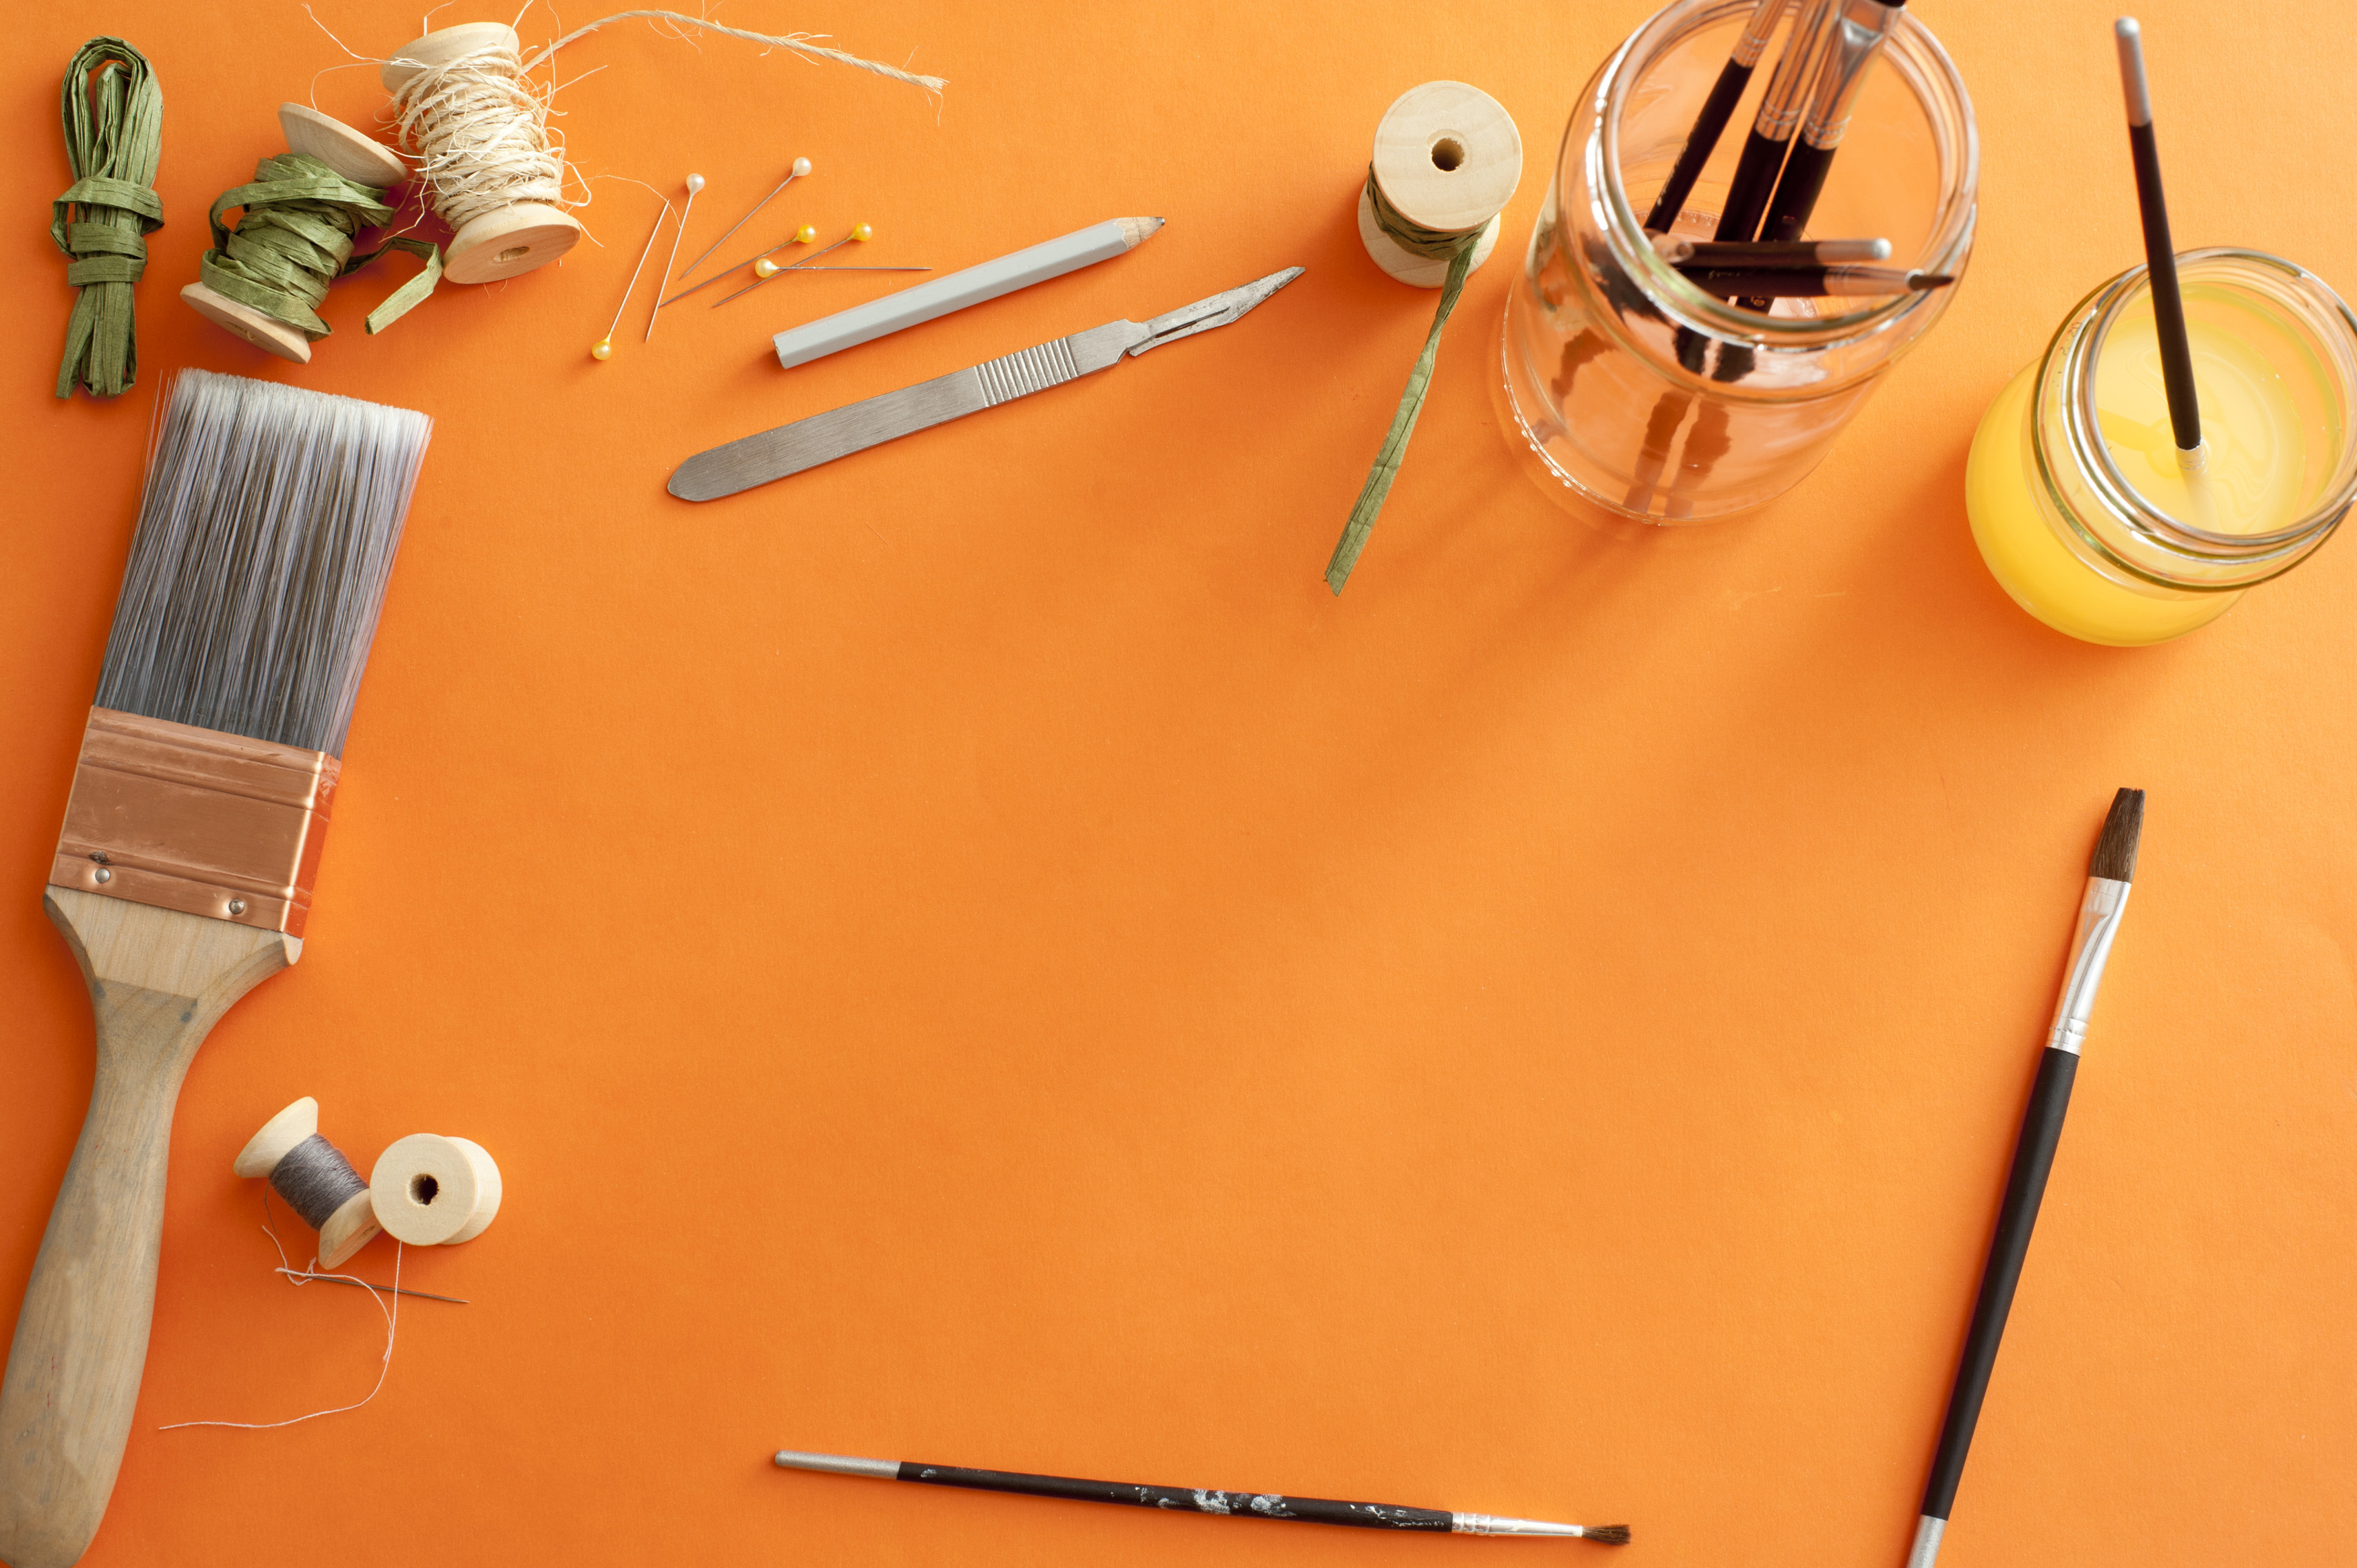 free image of art and craft concept background 2